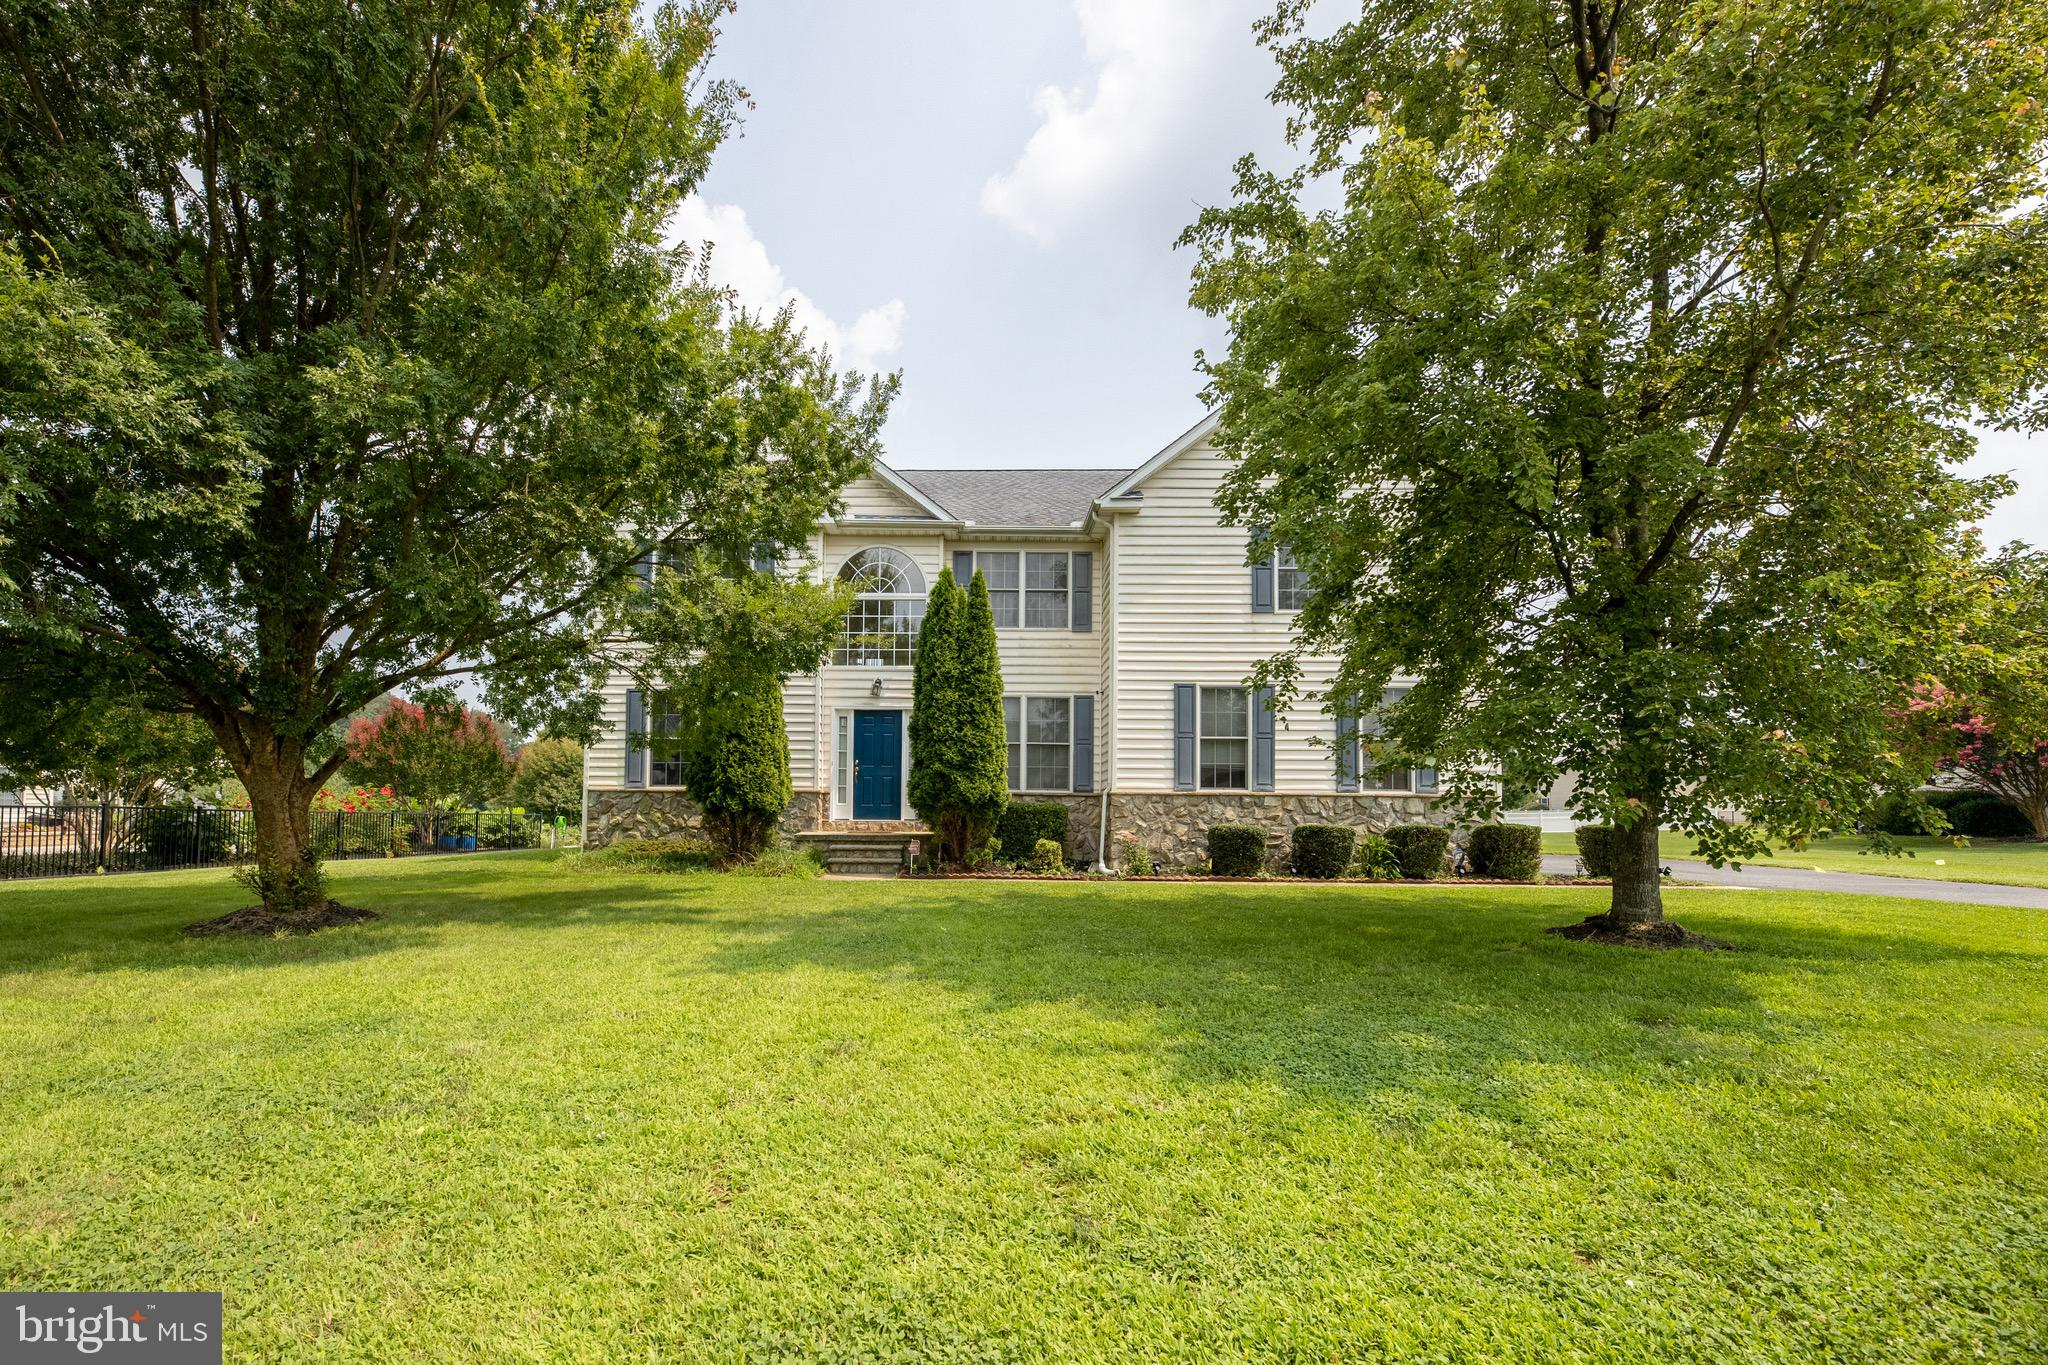 A high caliber home in Country Fields! This 2005-built, 4BRs/2 ½ bath traditional home boasts almost 3,500 sq. ft. of space and is nestled on over ½ acre with quiet countryside as backdrop to peaceful living. Mature trees dot lush, level front lawn that precedes this stately white siding edged with Williamsburg blue shutters/front door with stone skirt 2-story home, while low-lying hedges hug sidewalk and tall, cone-shaped pines mark open, elevated, sun-splash front entry. Home's updates include new irrigation system powered by new 4-inch well (2021), new dual-zone AC (2020), and new primary bathroom shower. Step inside to luxury! Palladian window adds beauty and natural light that spills onto warm, polished hardwood floors in buttercream painted, cathedral ceiling foyer. Balcony overlook is just above and adds elegance to already regal entry and first impressions measure high when recognizing front of home is comprised of formal rooms. To left is LR, where hardwoods turn to soft, neutral carpeting and together dual window and single window provide corner of abundant natural light. Relax in here with pre-dinner drinks and post-dinner dessert! Opposite LR and across foyer sits DR, where neutral carpeting is repeated, and lovely chair rail is added. This formal space is the base of entertaining! With FR, modern architecture emerges with high ceilings, different height windows and an airiness that permeates the room. This notch-above 2-story FR offers twice the ambiance with striking dual-level windows, prominent, exposed, carpeted staircase and sweeping space to live life! Collection of couches, chairs, coffee table and comfortable furnishings make this the leading laid-back locale for go-to gatherings and everyday relaxing! Sweeping kitchen is filled-to-the-brim with personality! Ceramic tile anchors floor, while pristine white cabinets accented with silver hardware are paired with white appliances including high-end refrigerator/freezer. Blue trim, echoed from home'